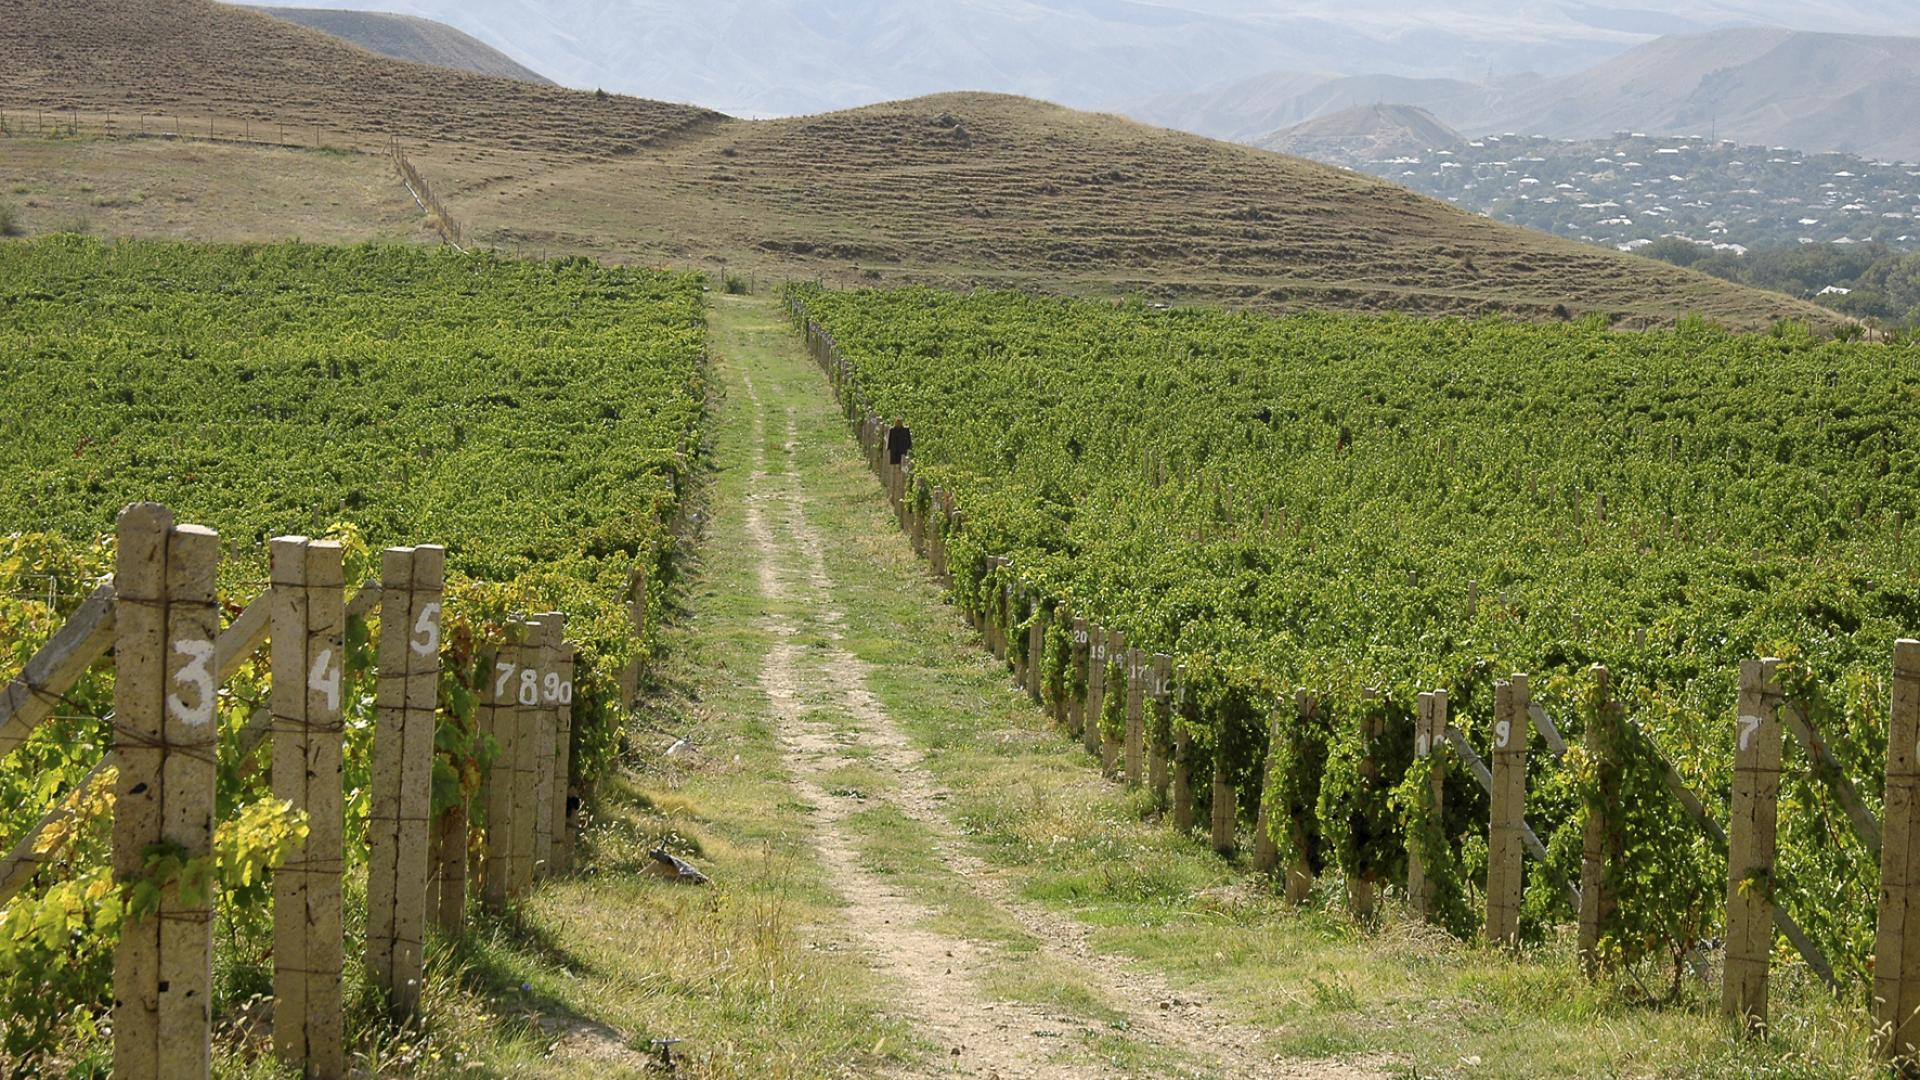 A large green wine vineyard with a road going up the middle of it